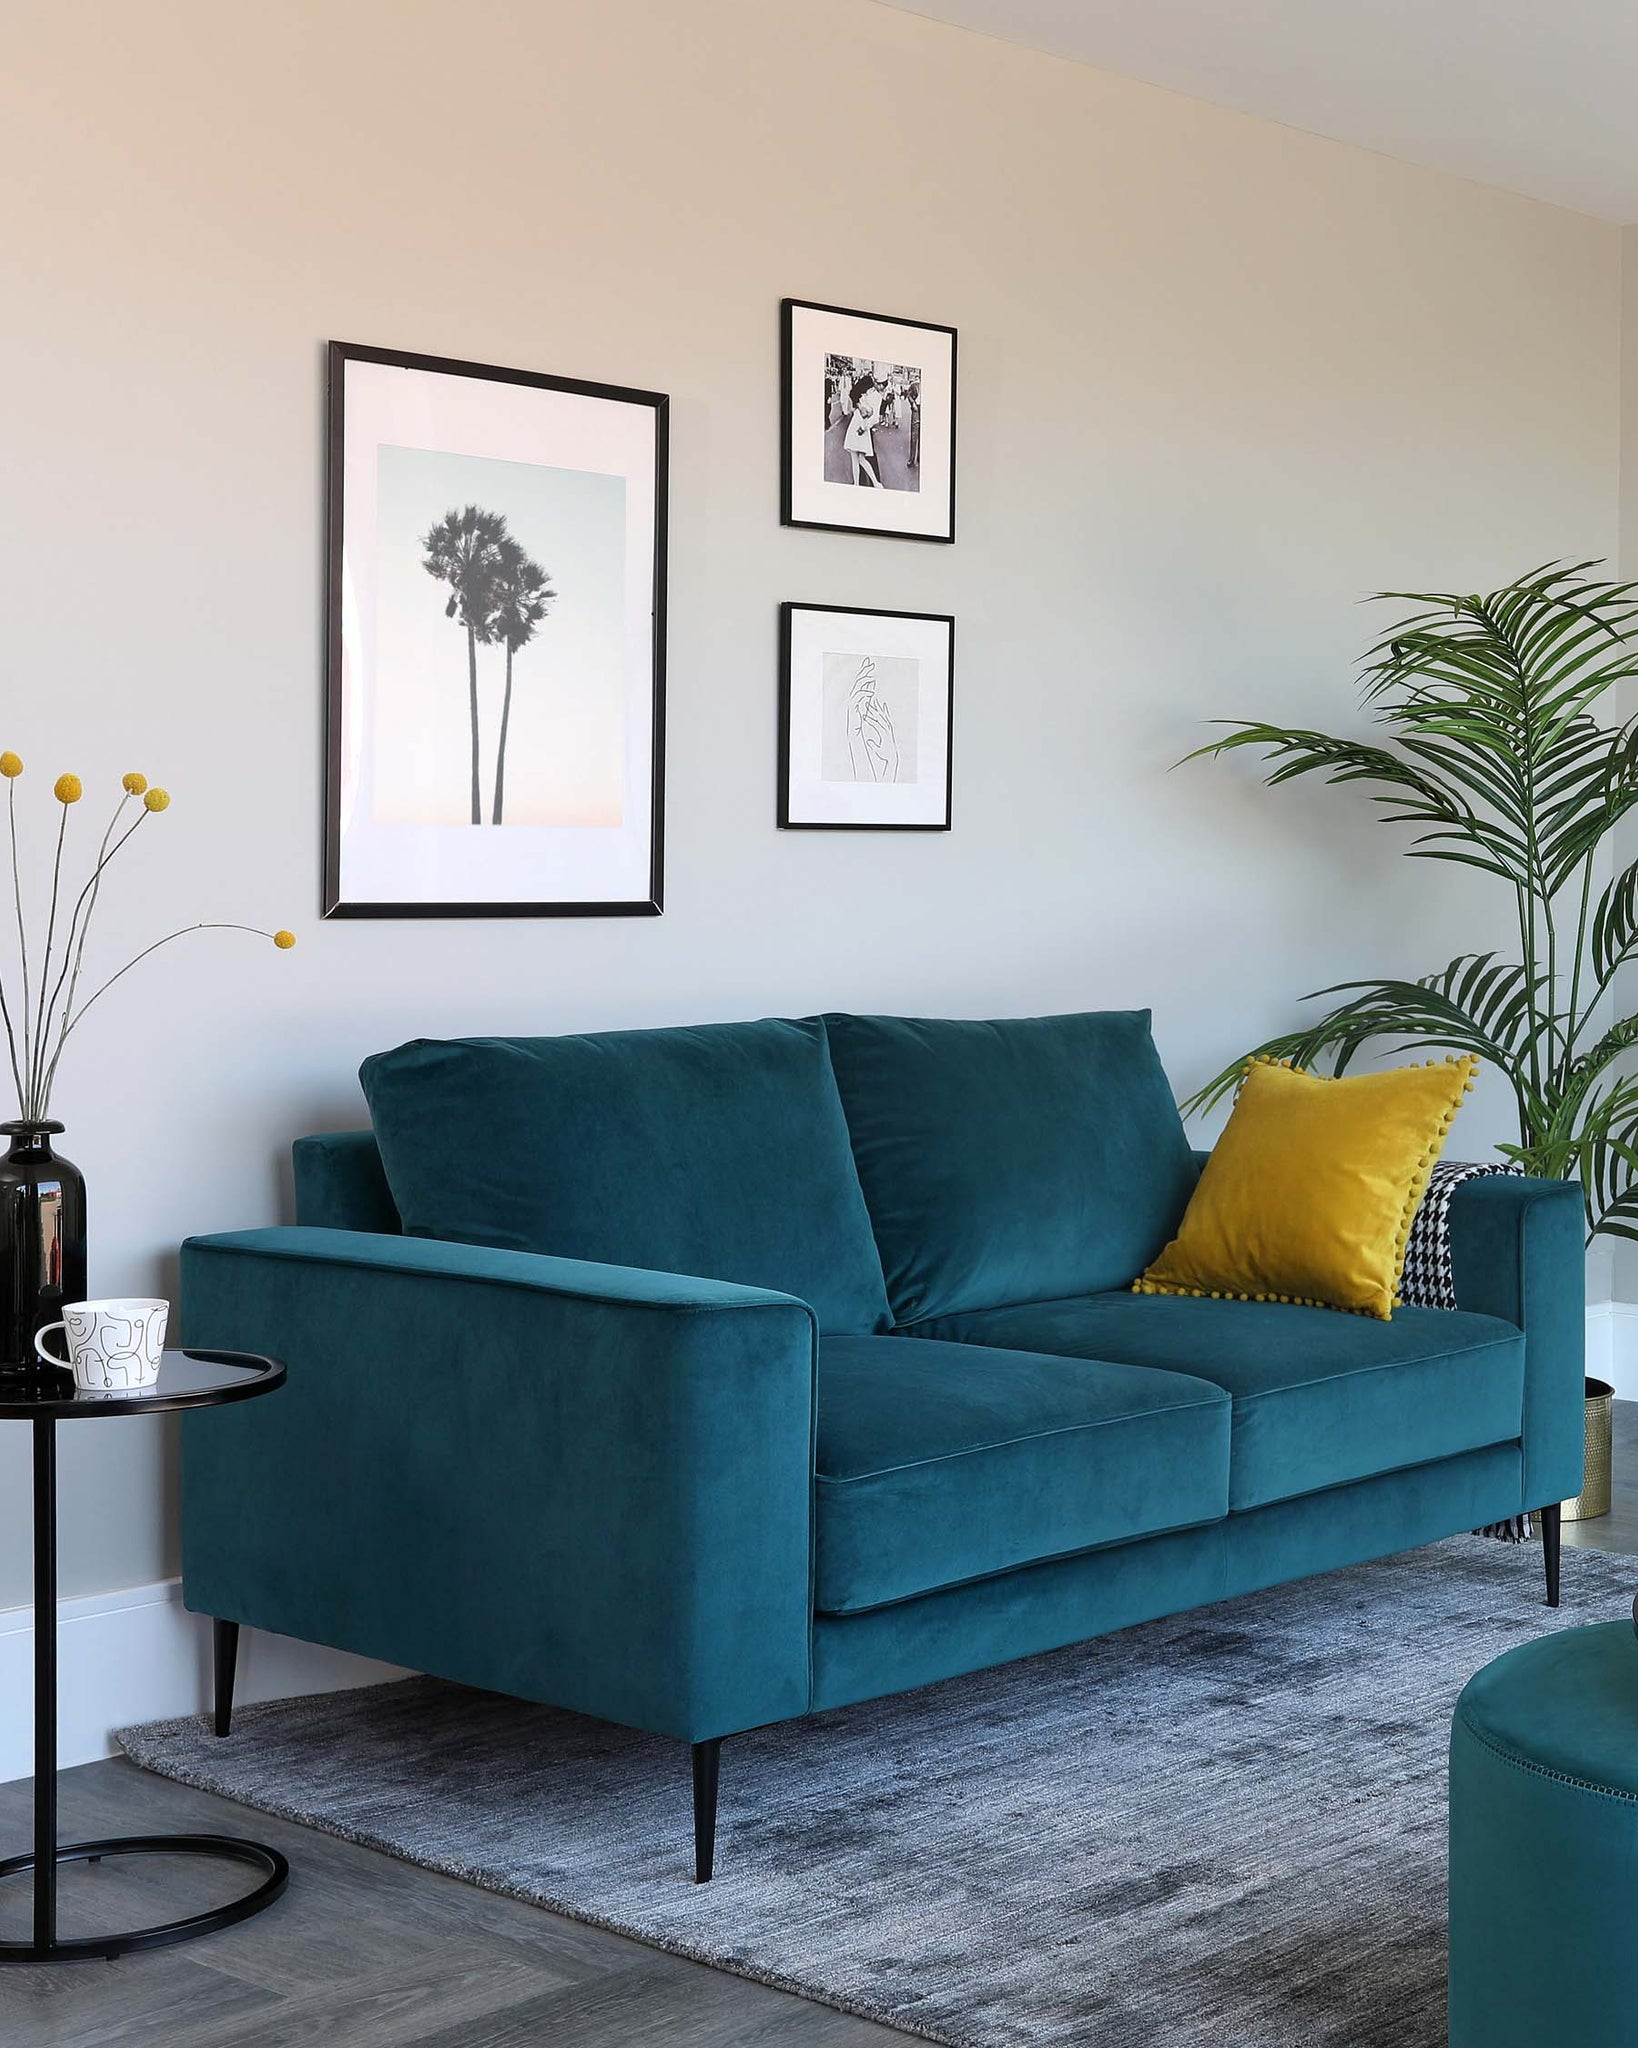 Bailey 3 Seater Teal Velvet Sofa